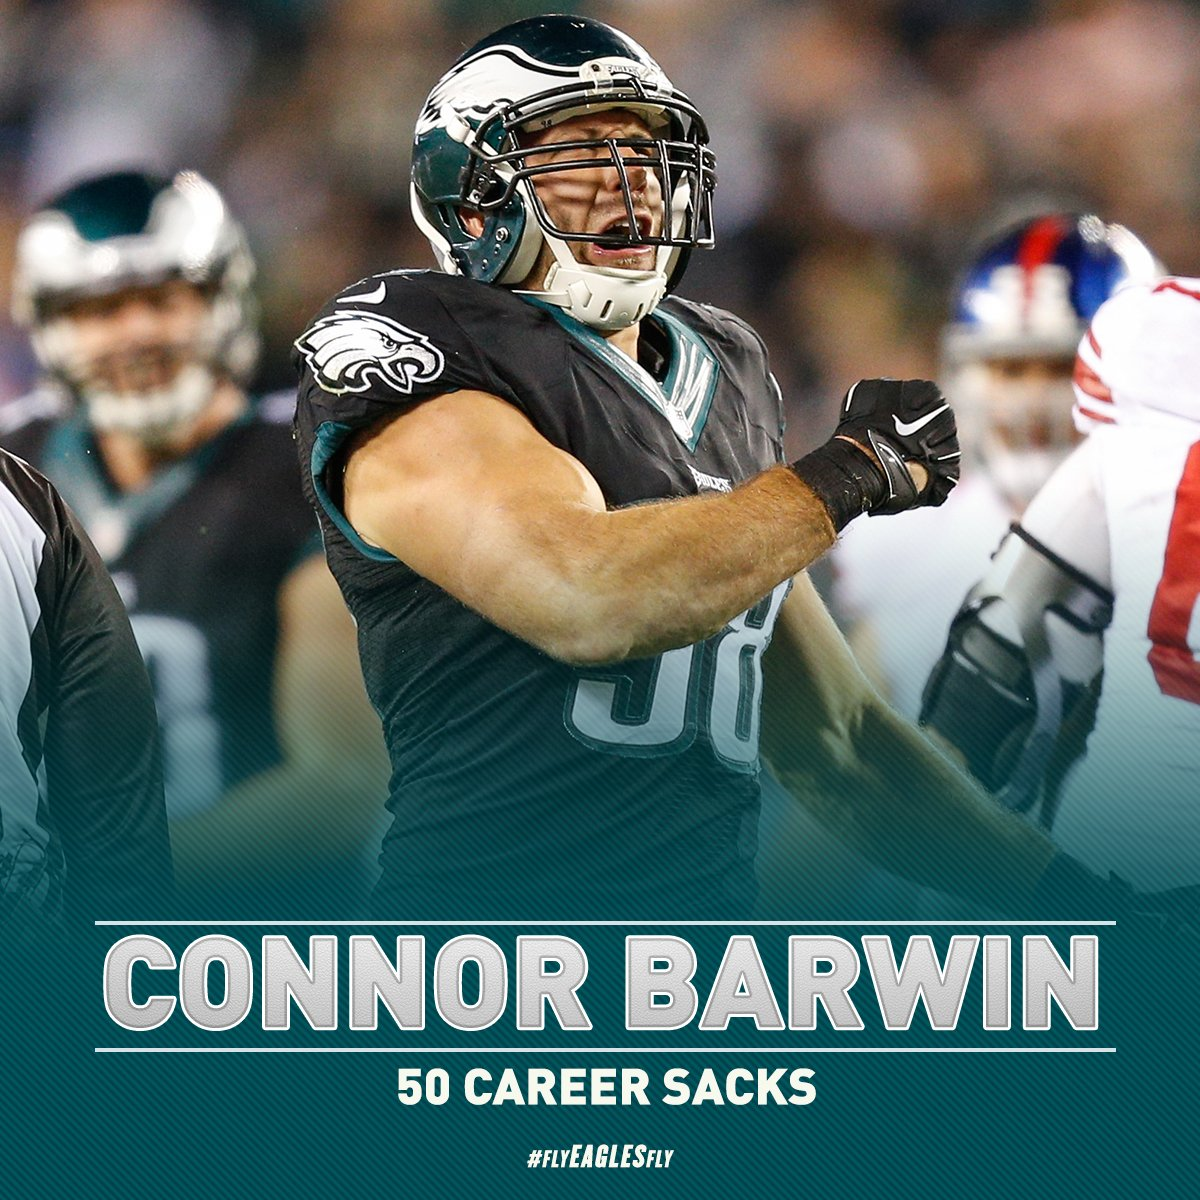 With that sack, @ConnorBarwin98 has surpassed 50 sacks for his NFL career.  #FlyEaglesFly https://t.co/MESIzGRLg8